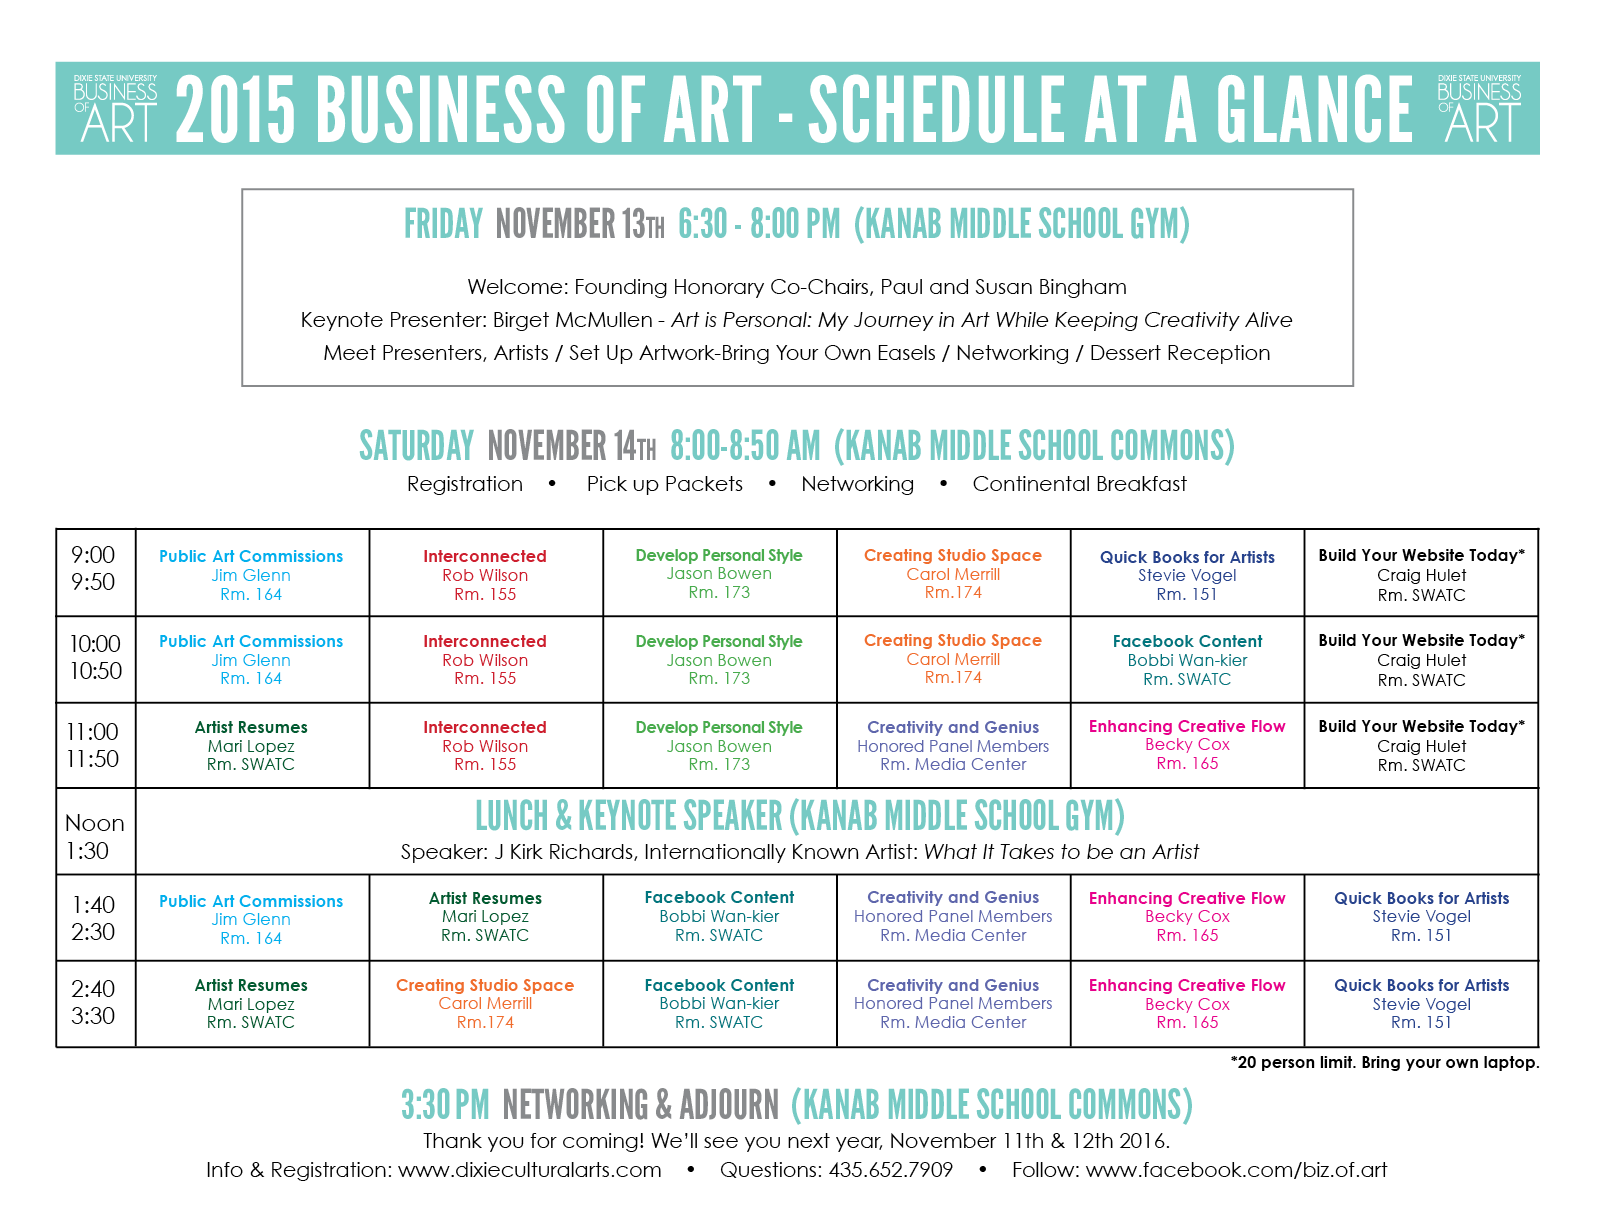 Business of Art schedule   Image courtesy of Dixie State University, St. George News   Click on image to enlarge